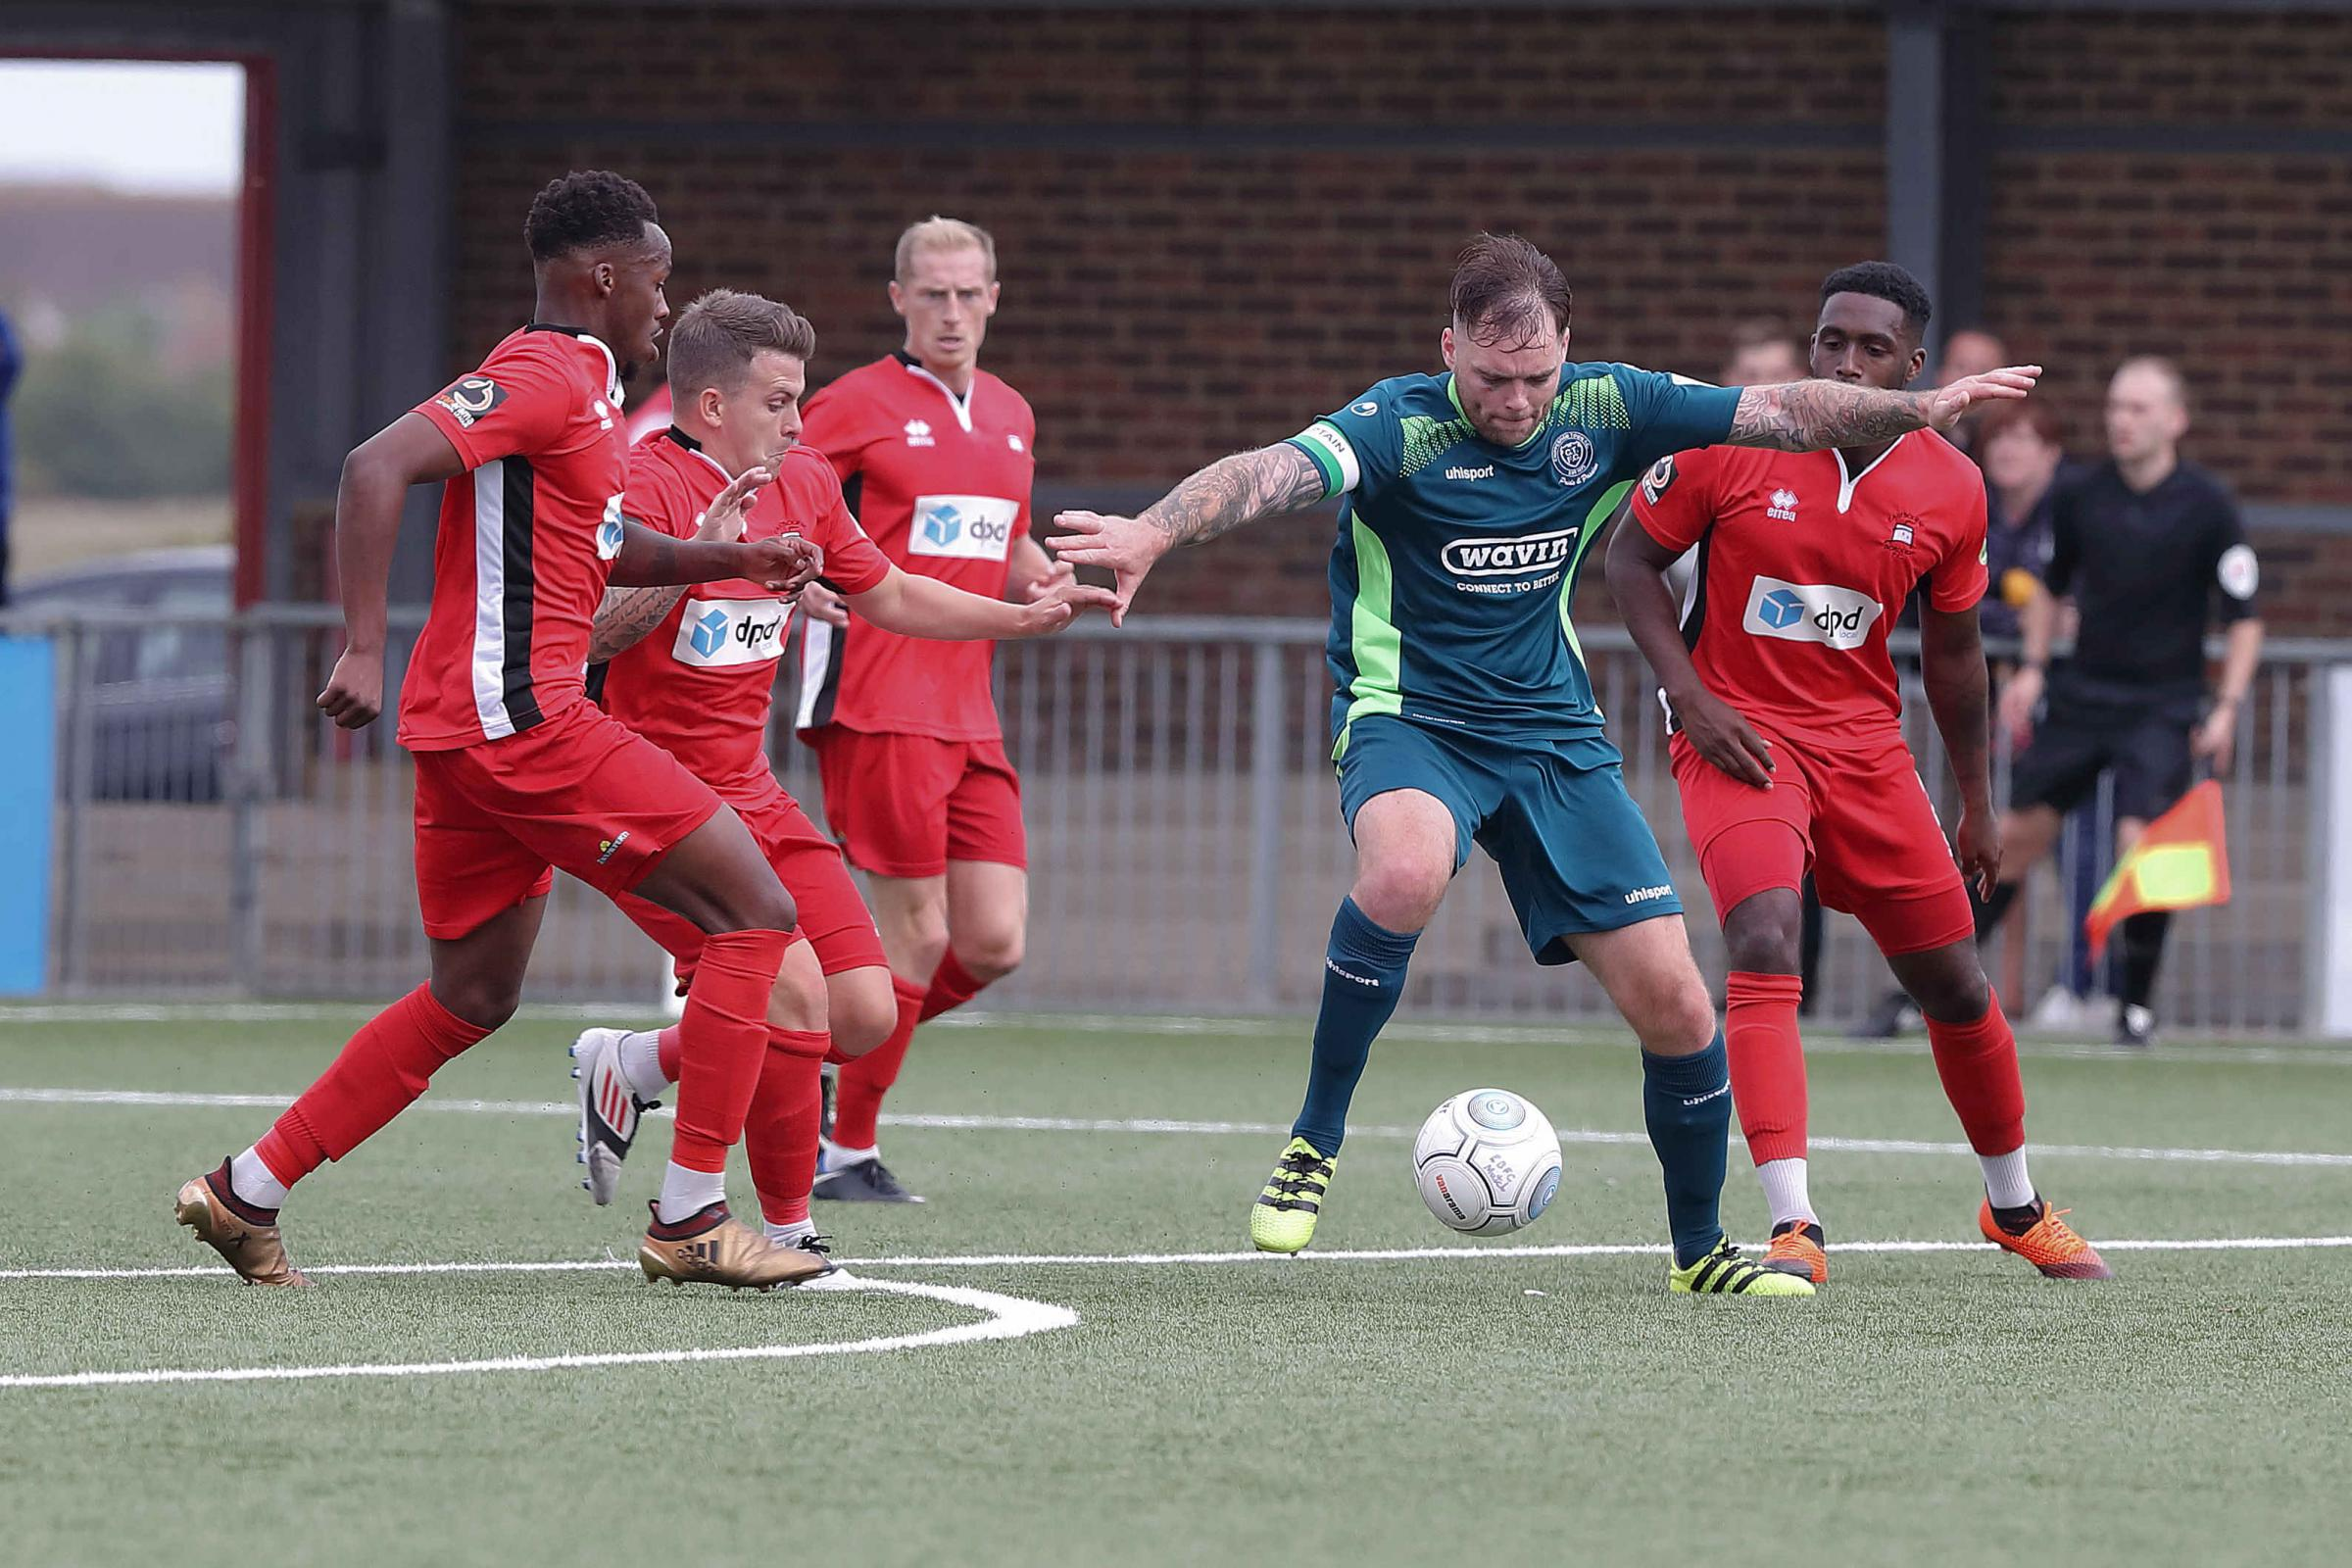 Chippenham Town's Greg Tindle (green) takes on four Eastbourne players during Chippenham Town's 2-1 defeat to Eastbourne Borough. Picture: RICHARD CHAPPELL